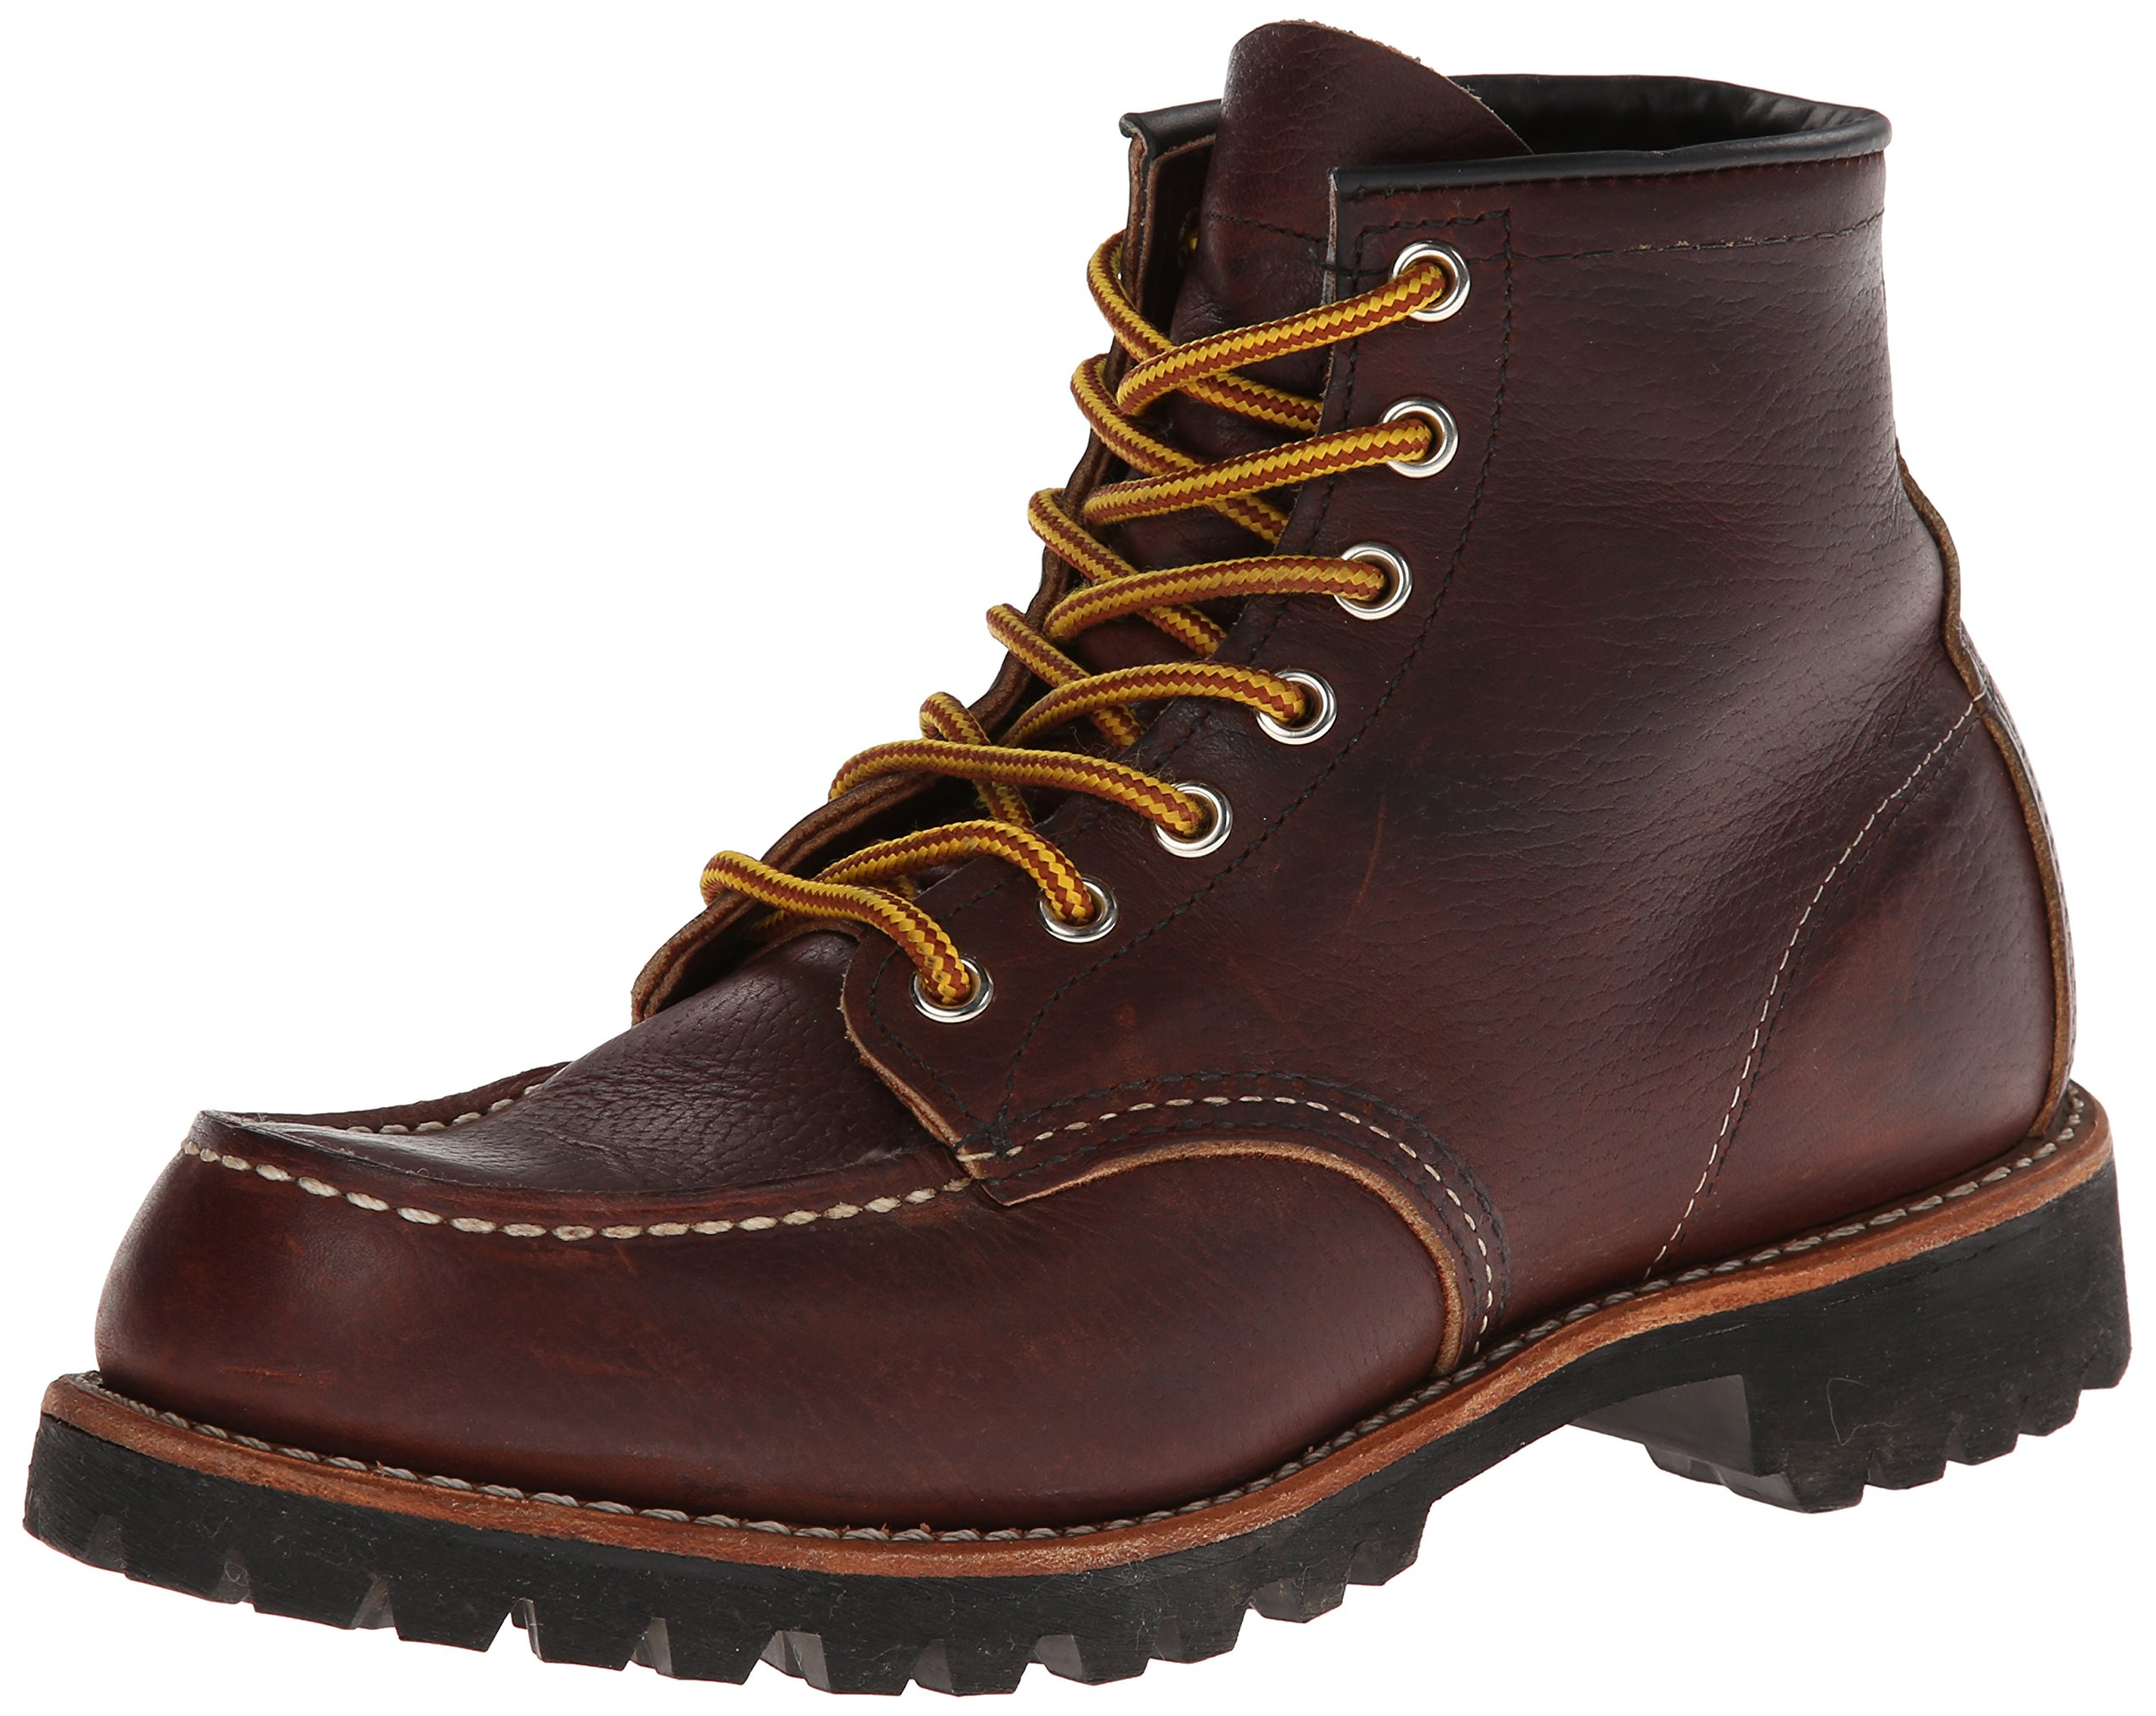 Red Wing Heritage Men's Six-Inch Moc Toe Lug Boot,Brown,12 D US